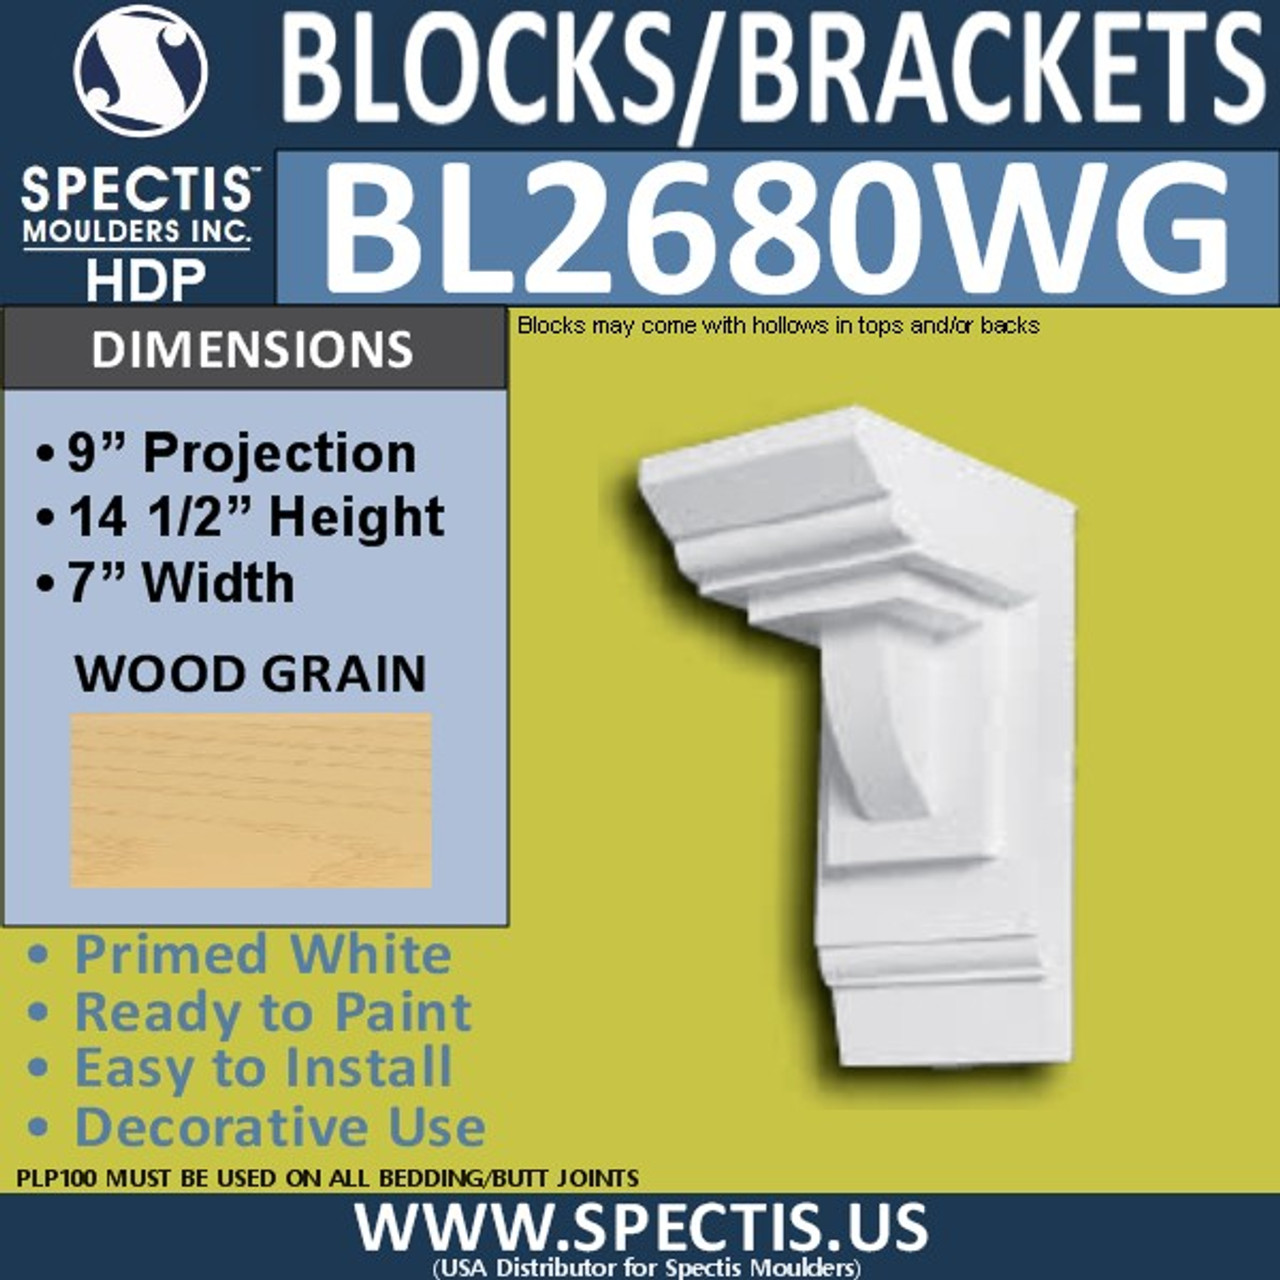 "BL2680 Eave Block or Bracket 7""W x 14.5""H x 9"" P"